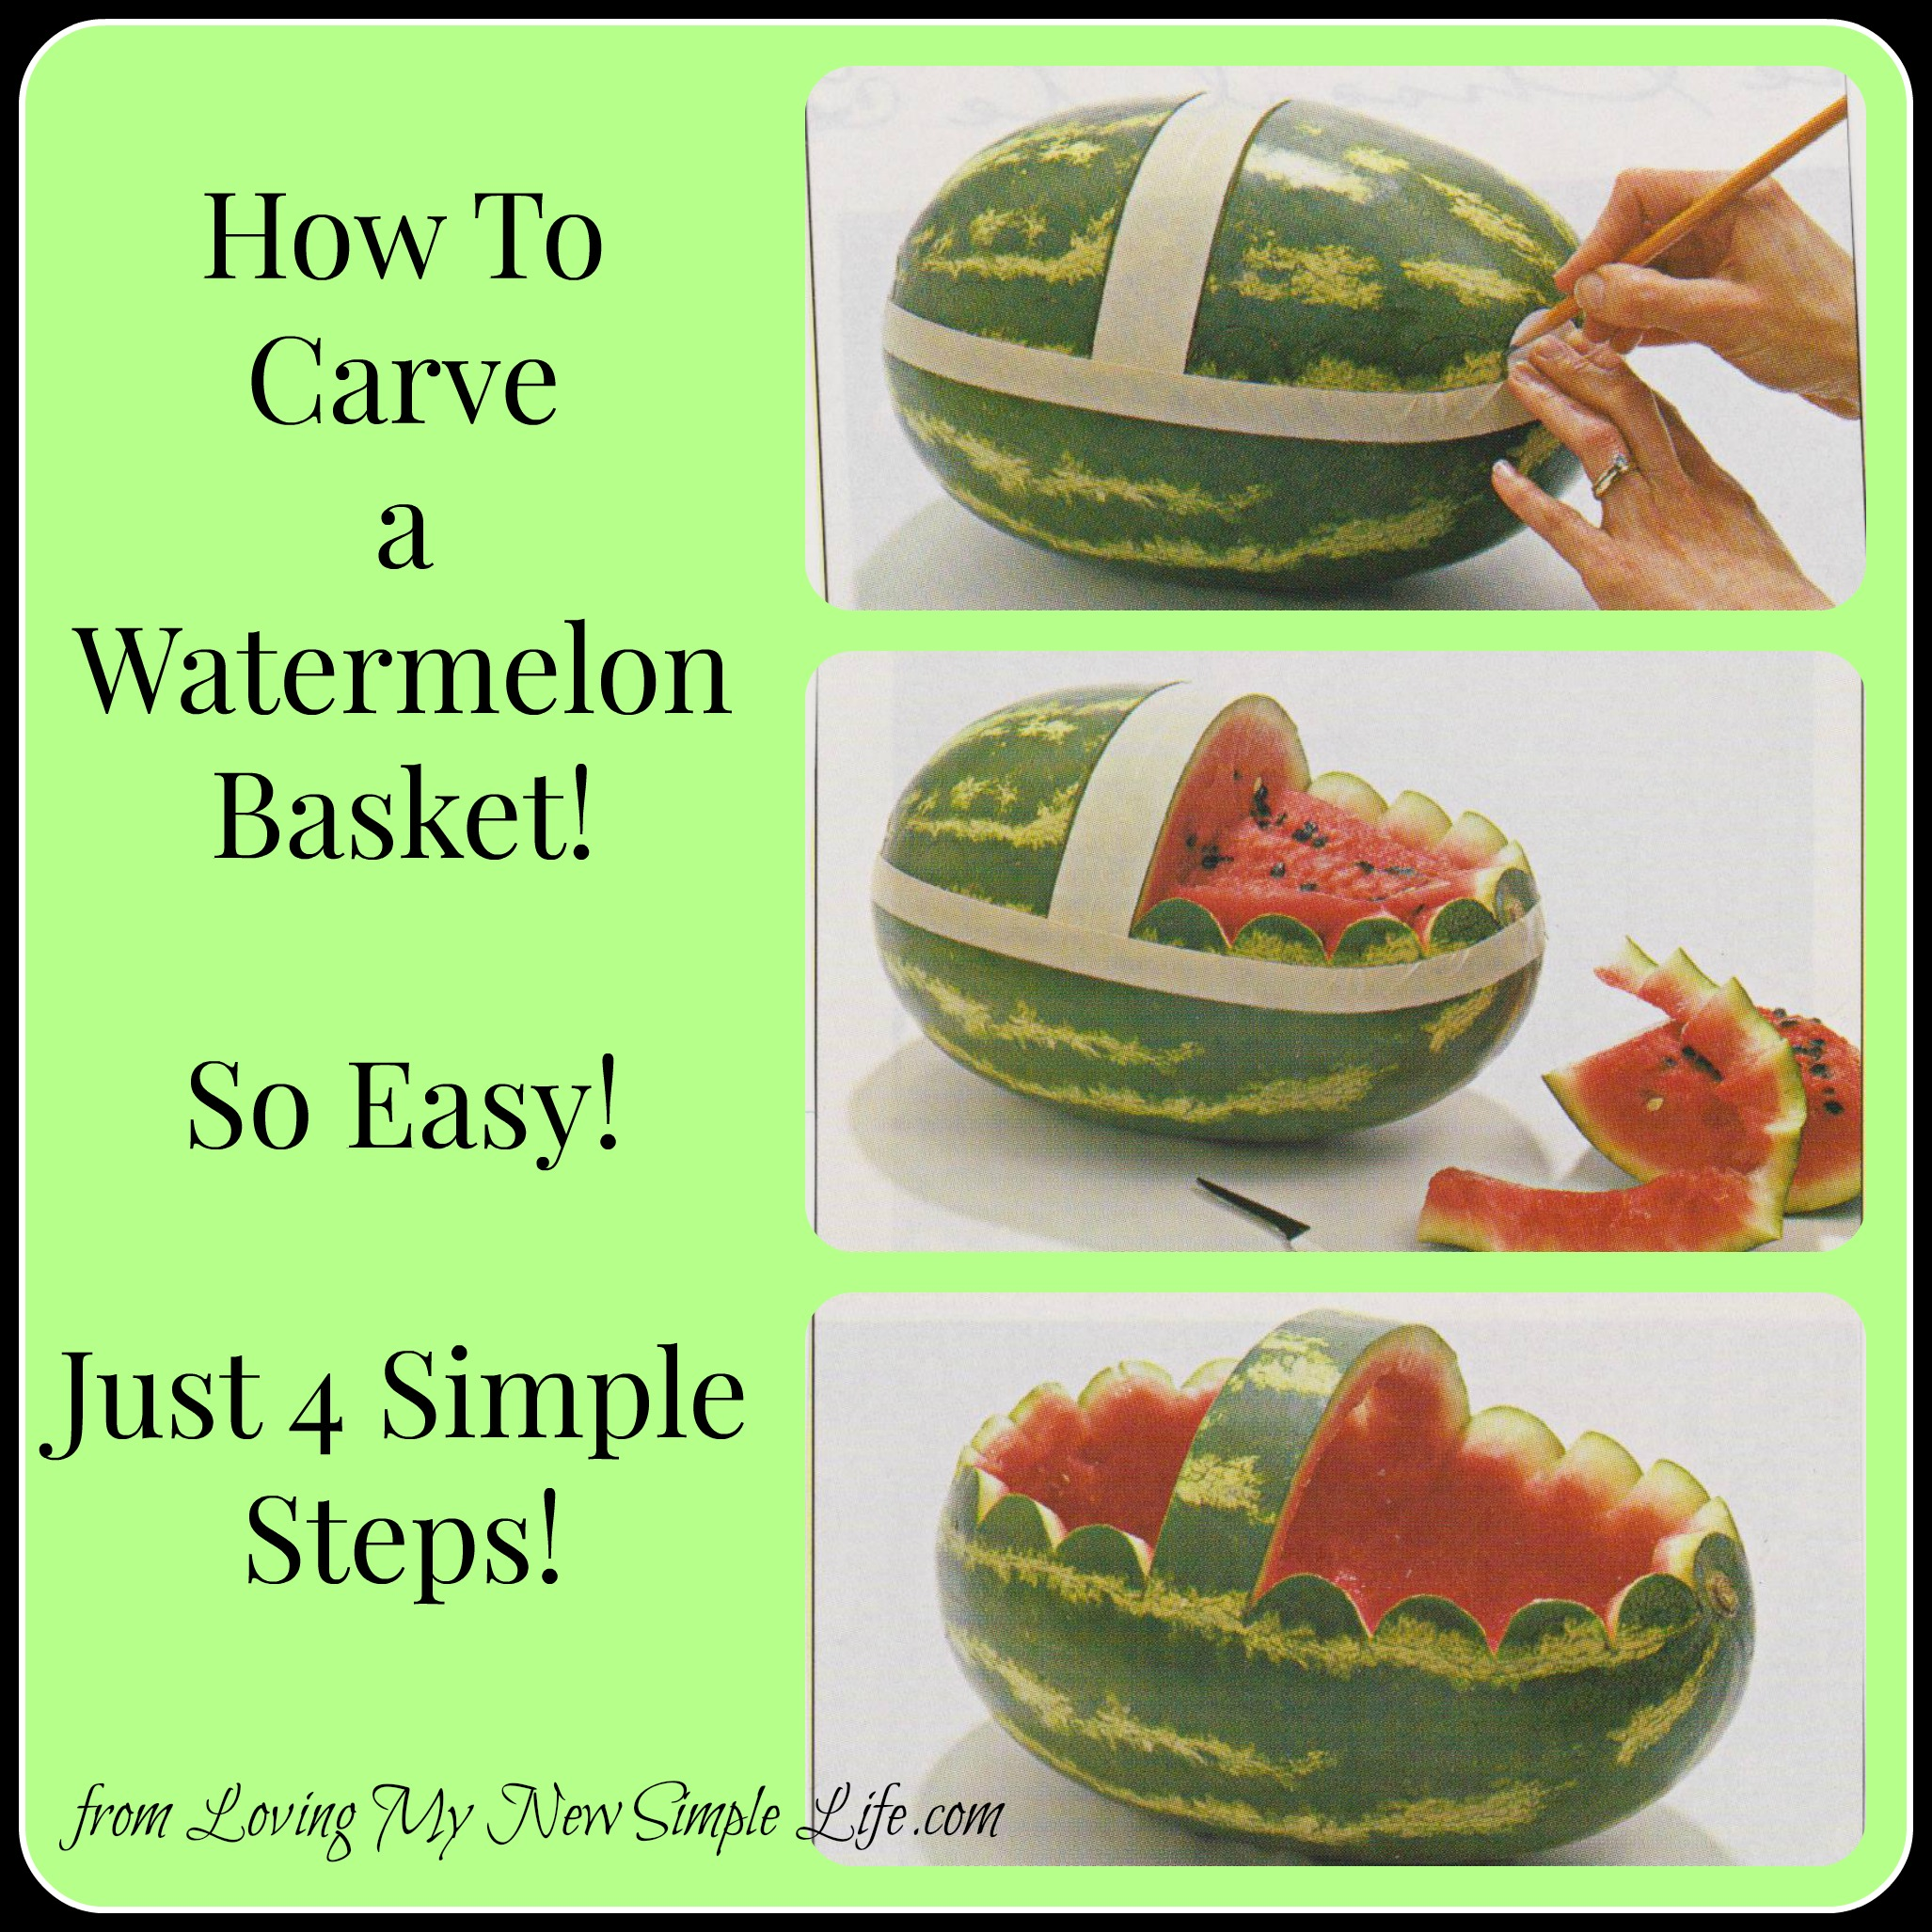 How to carve a watermelon basket loving my new simple life